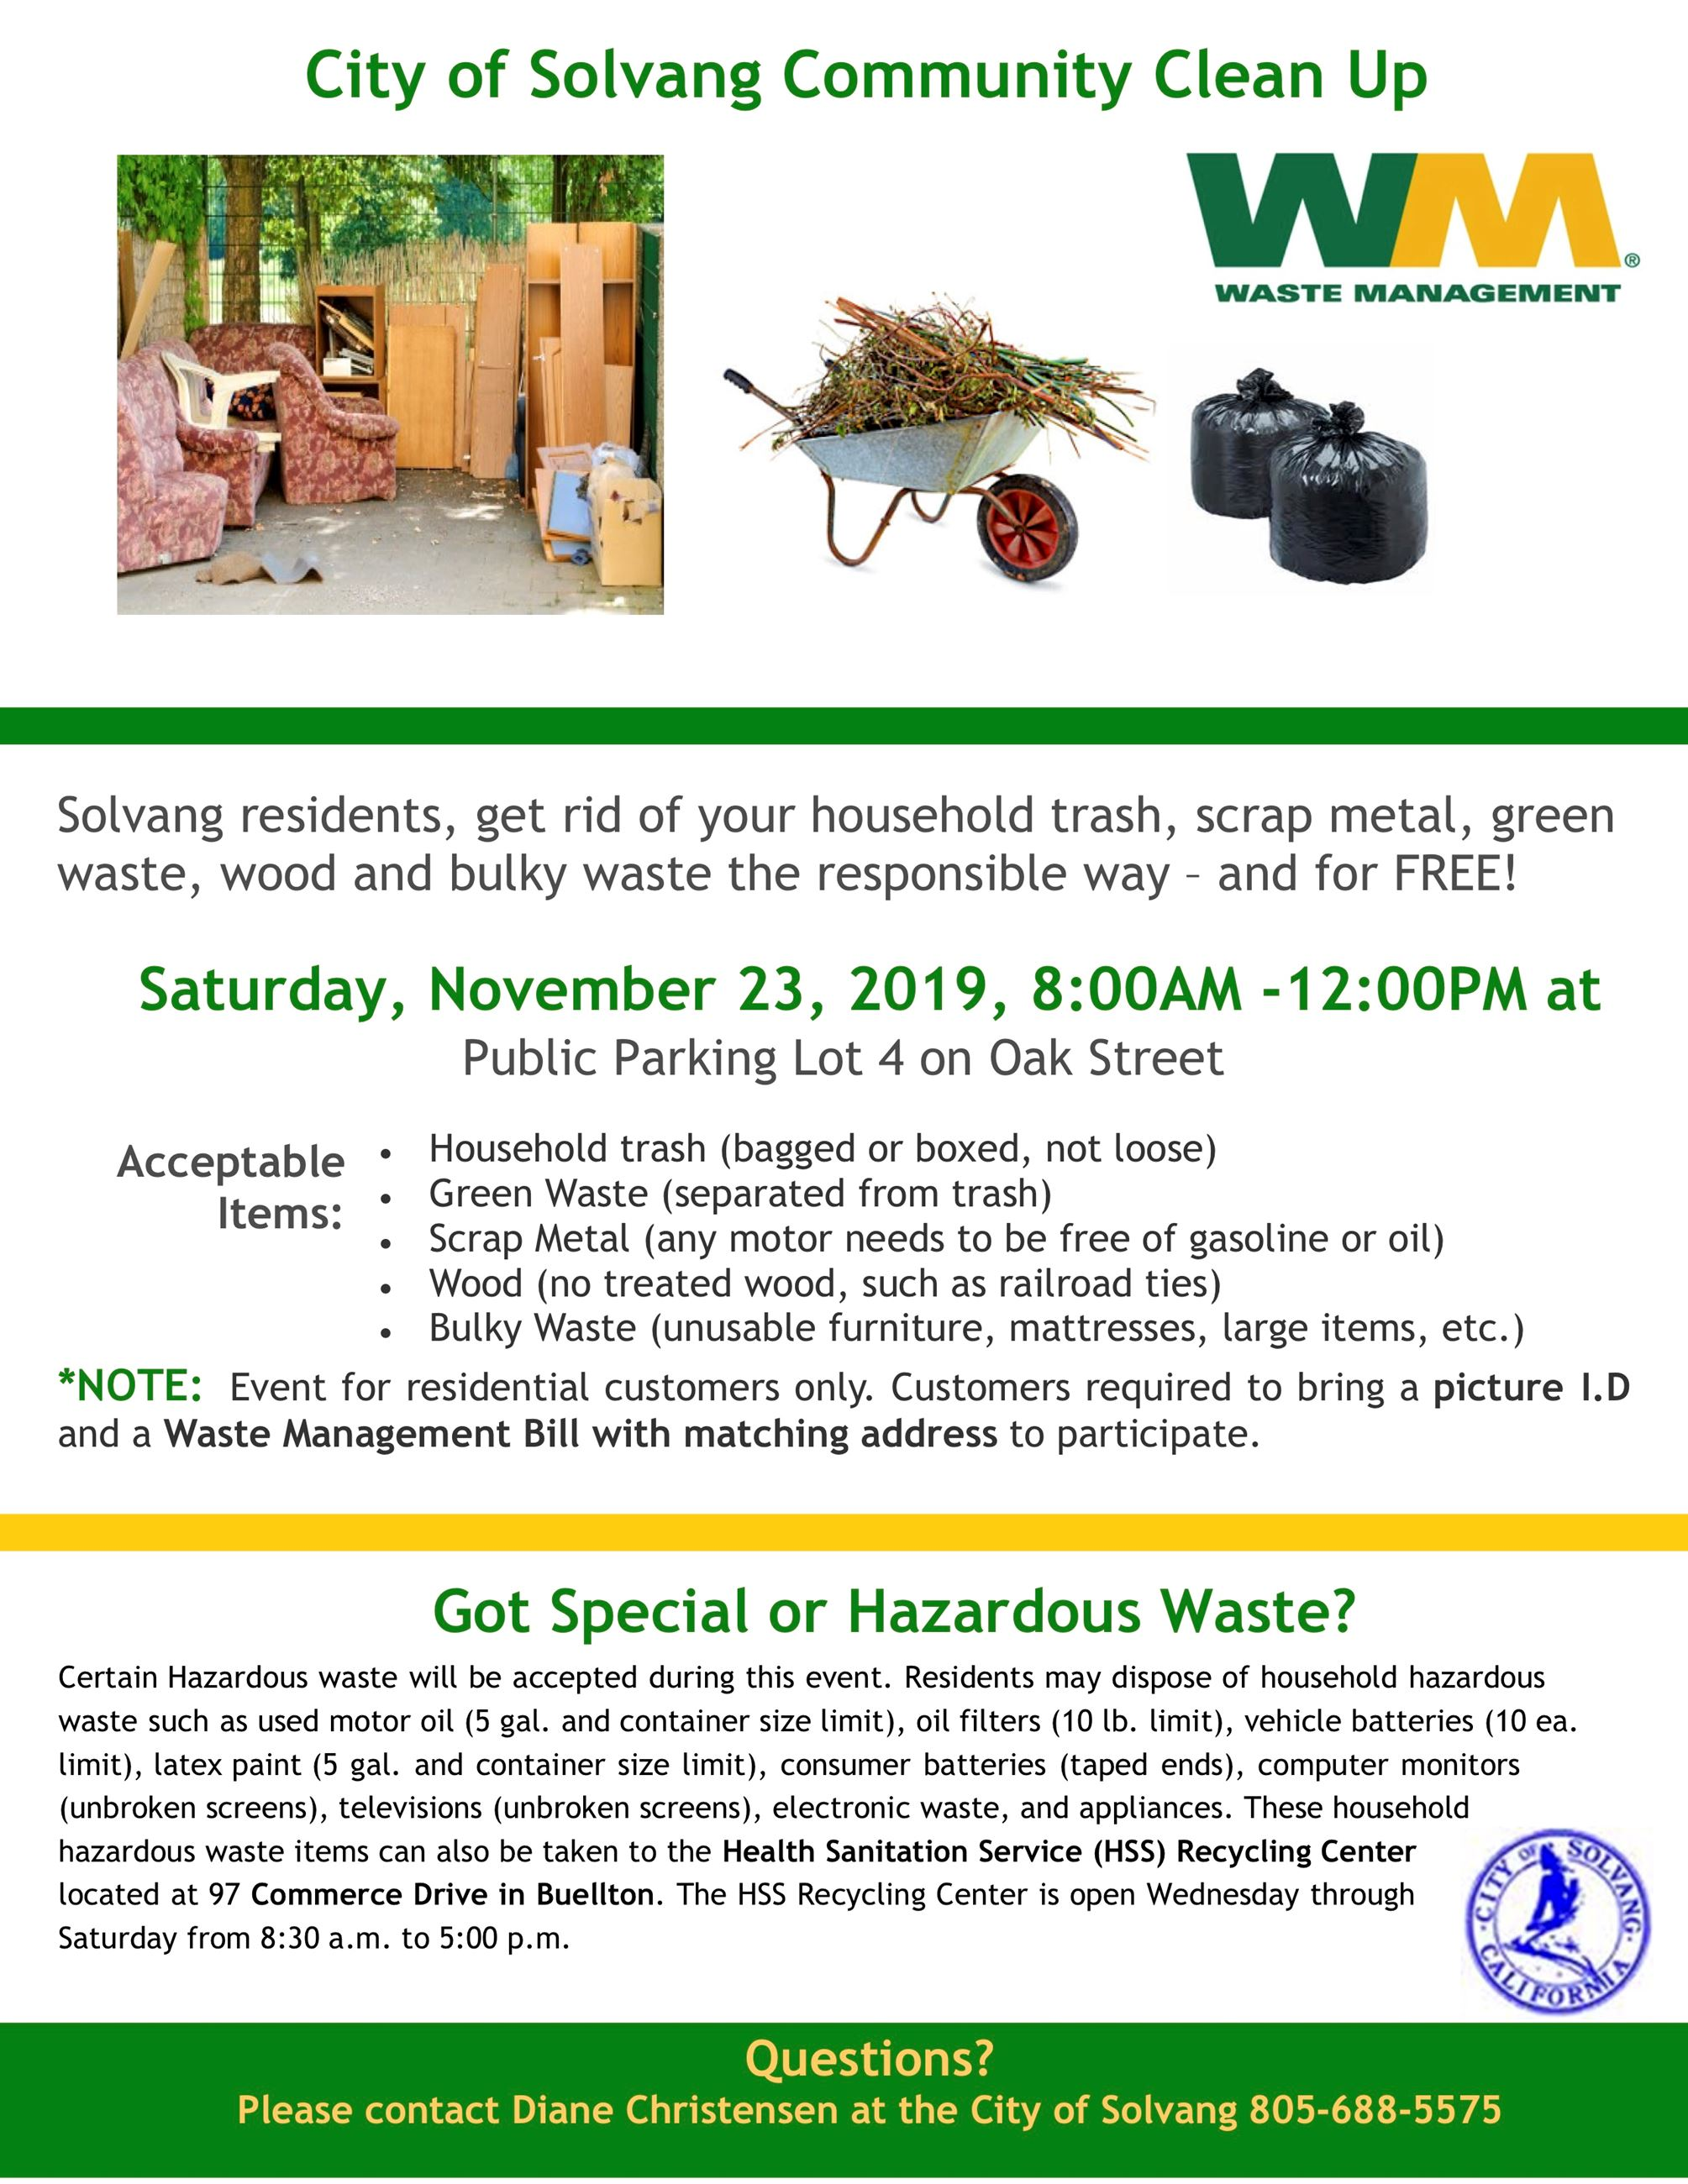 Solvang Clean Up Flyer 11.23.19[1]